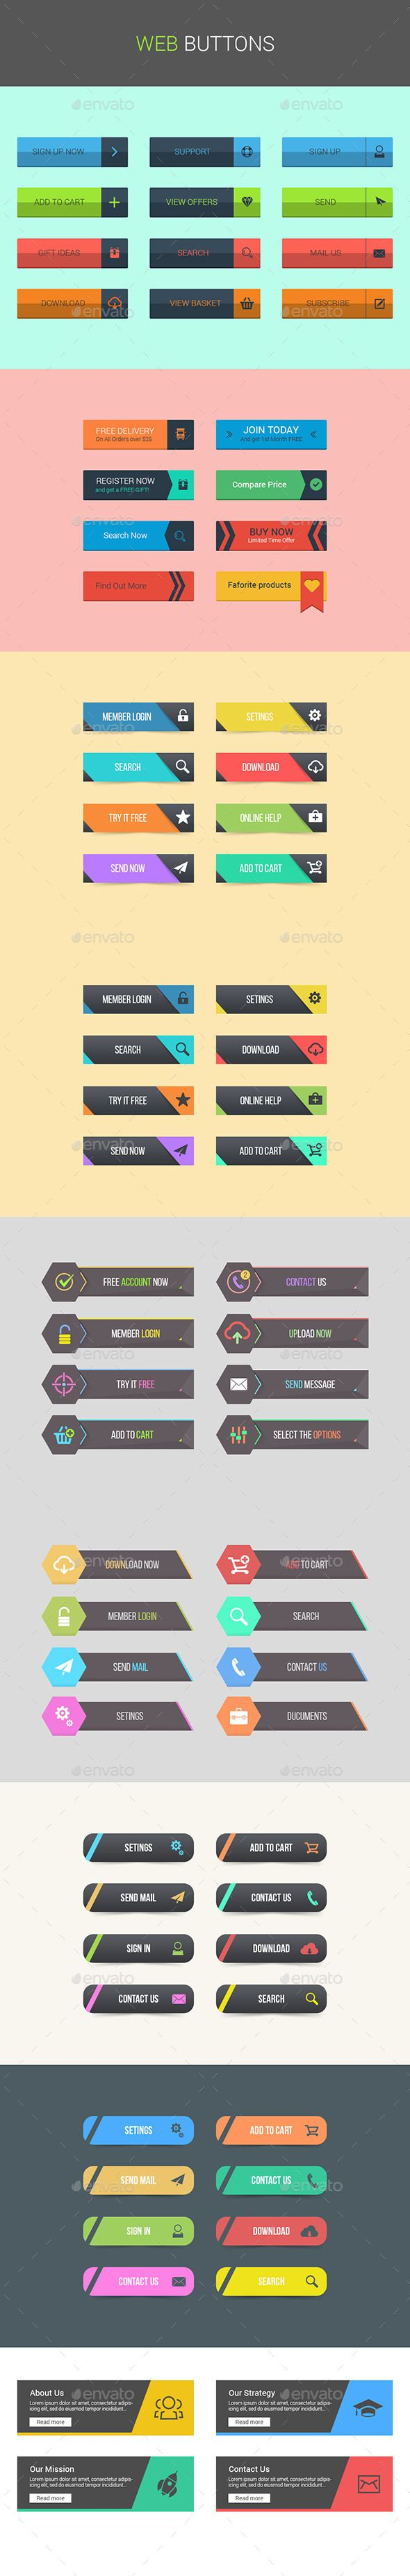 Web Buttons #design #web #elements Download: http://graphicriver.net/item/web-buttons/12650291?ref=ksioks